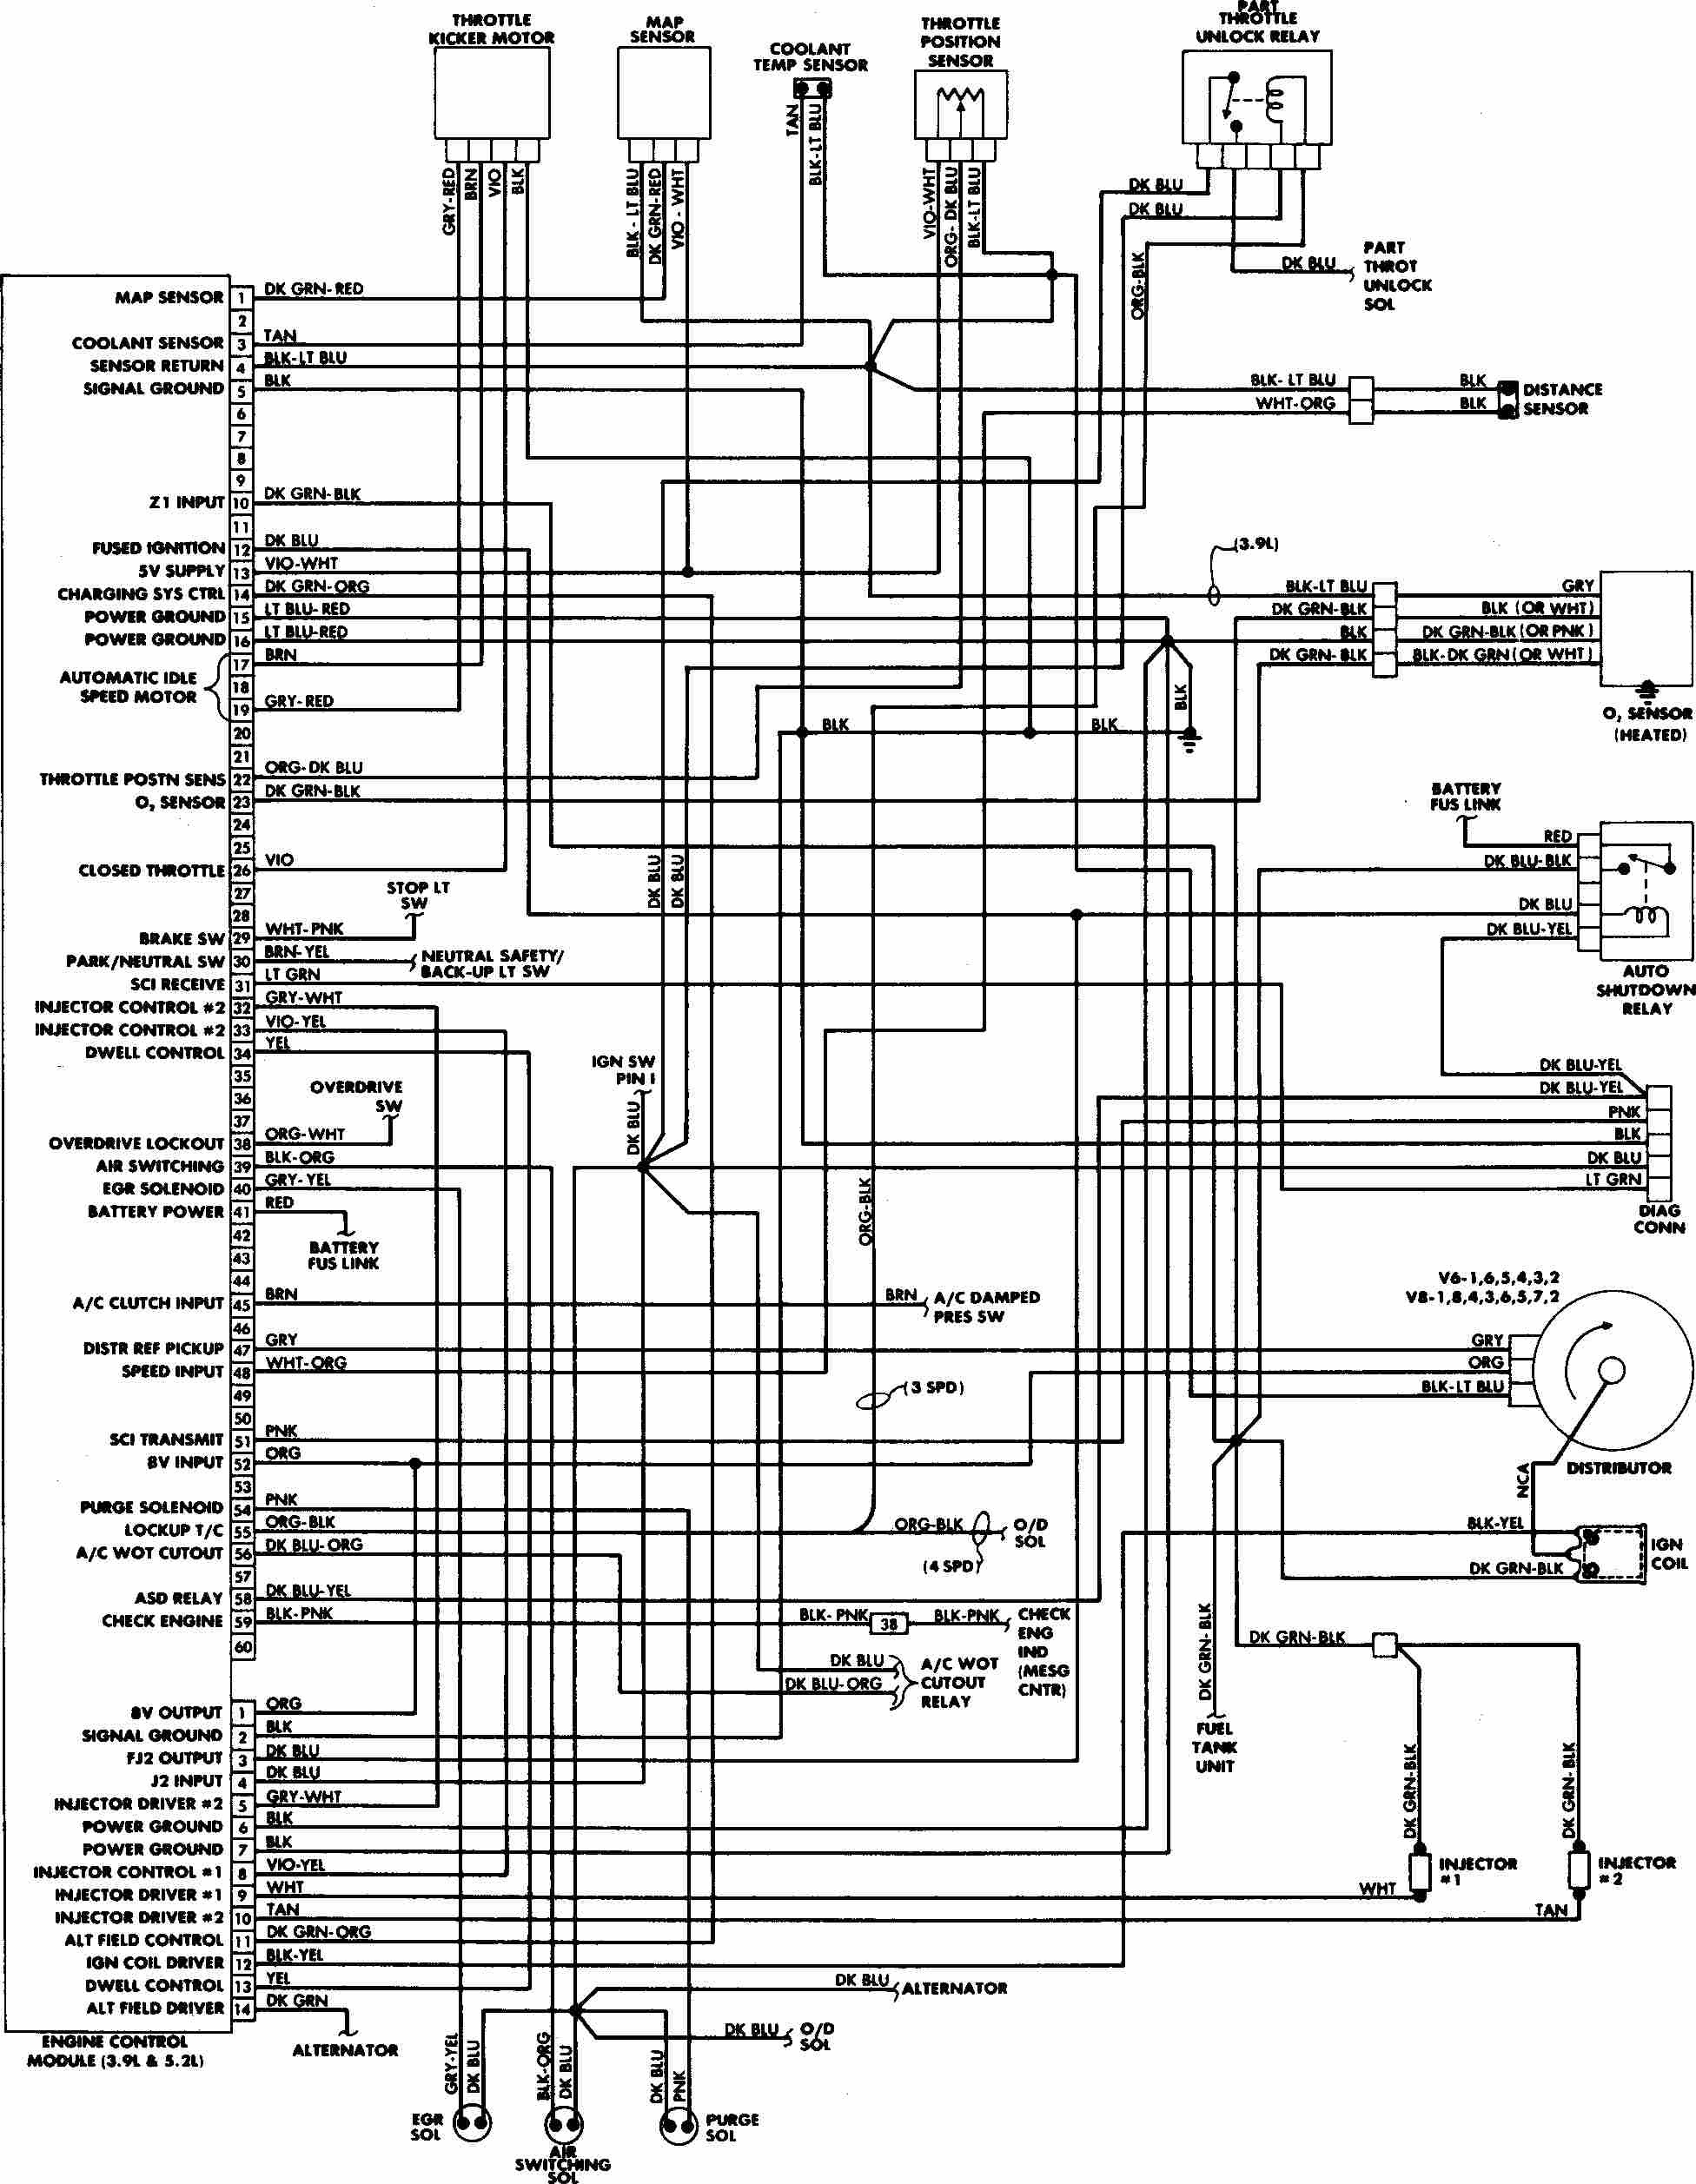 2001 3500 Silverado Tail Lights Wiring Diagram